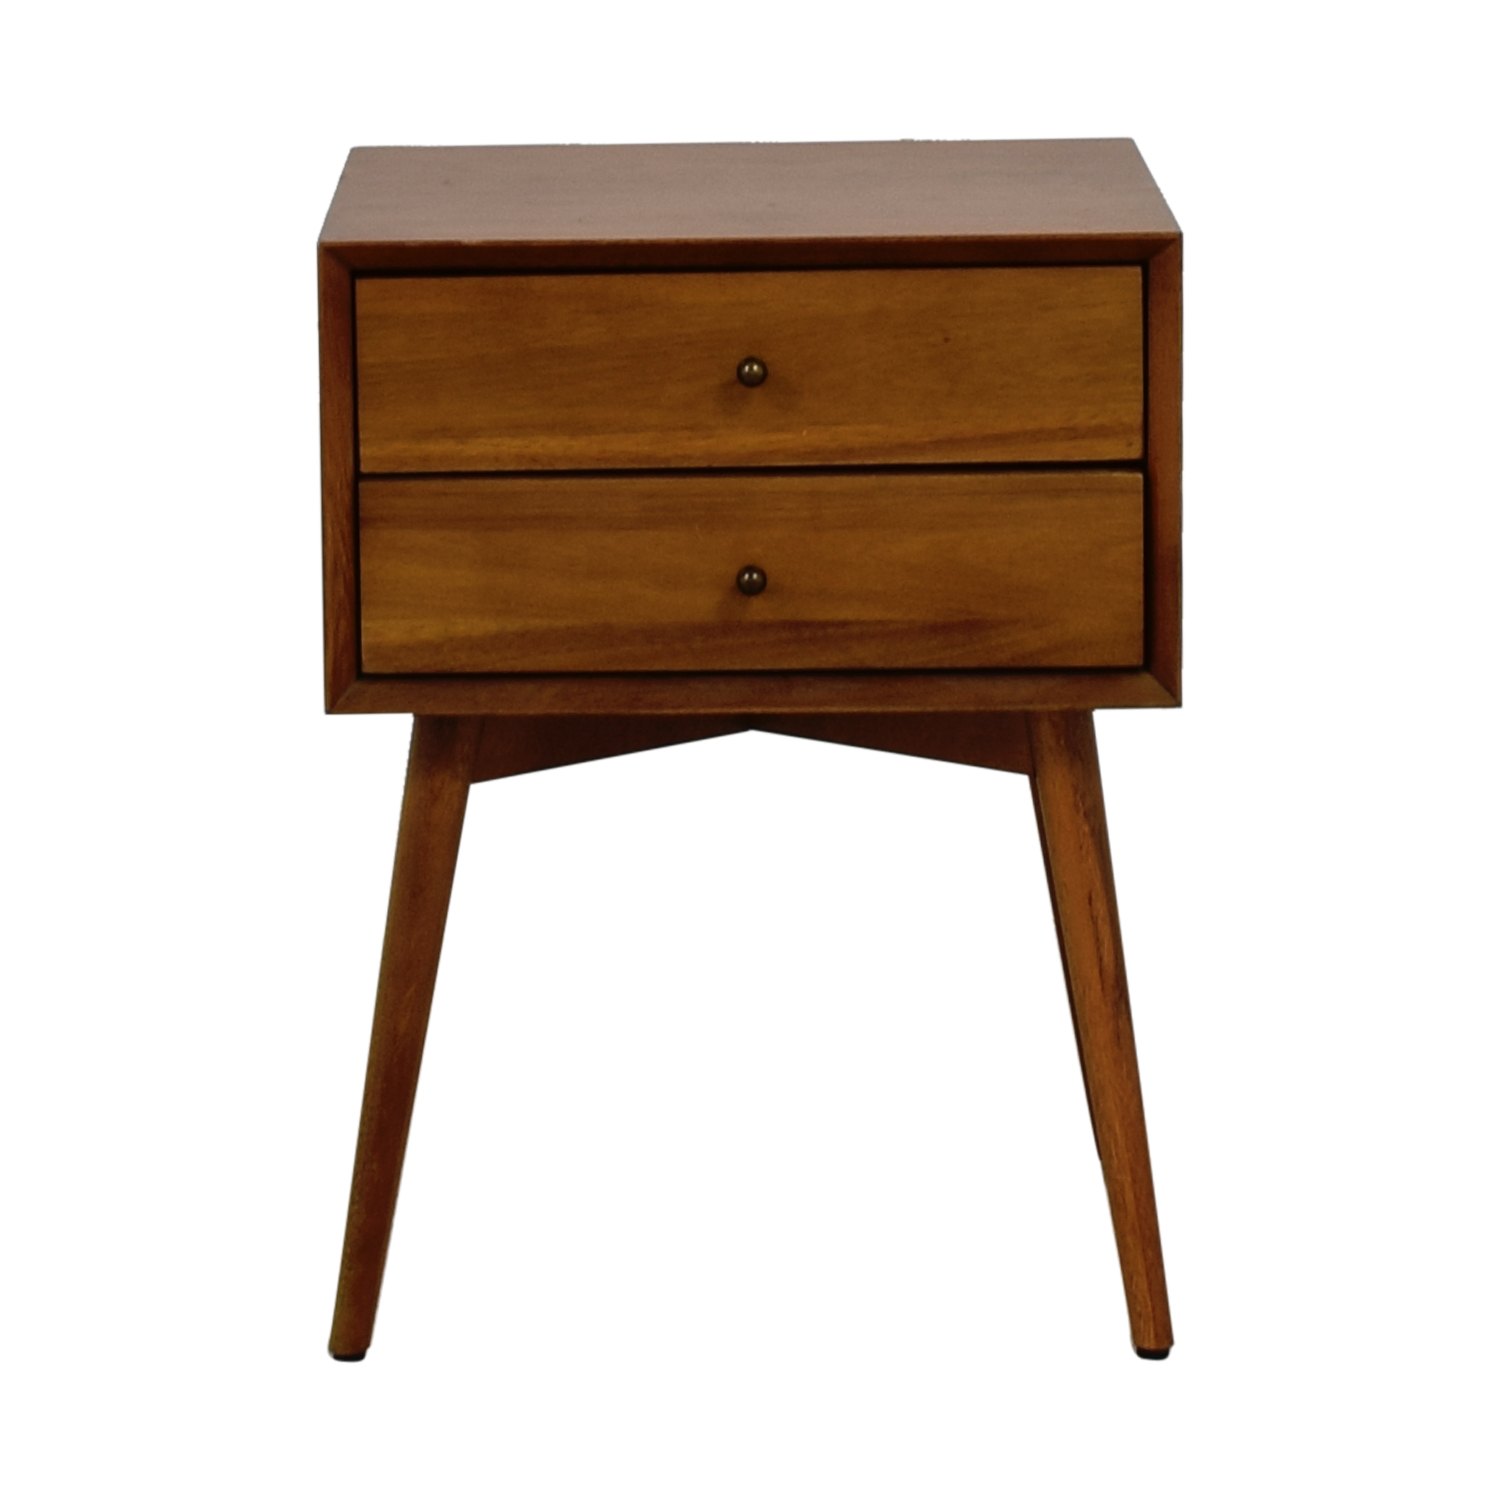 West Elm West Elm Acorn Two-Drawer Nightstand on sale